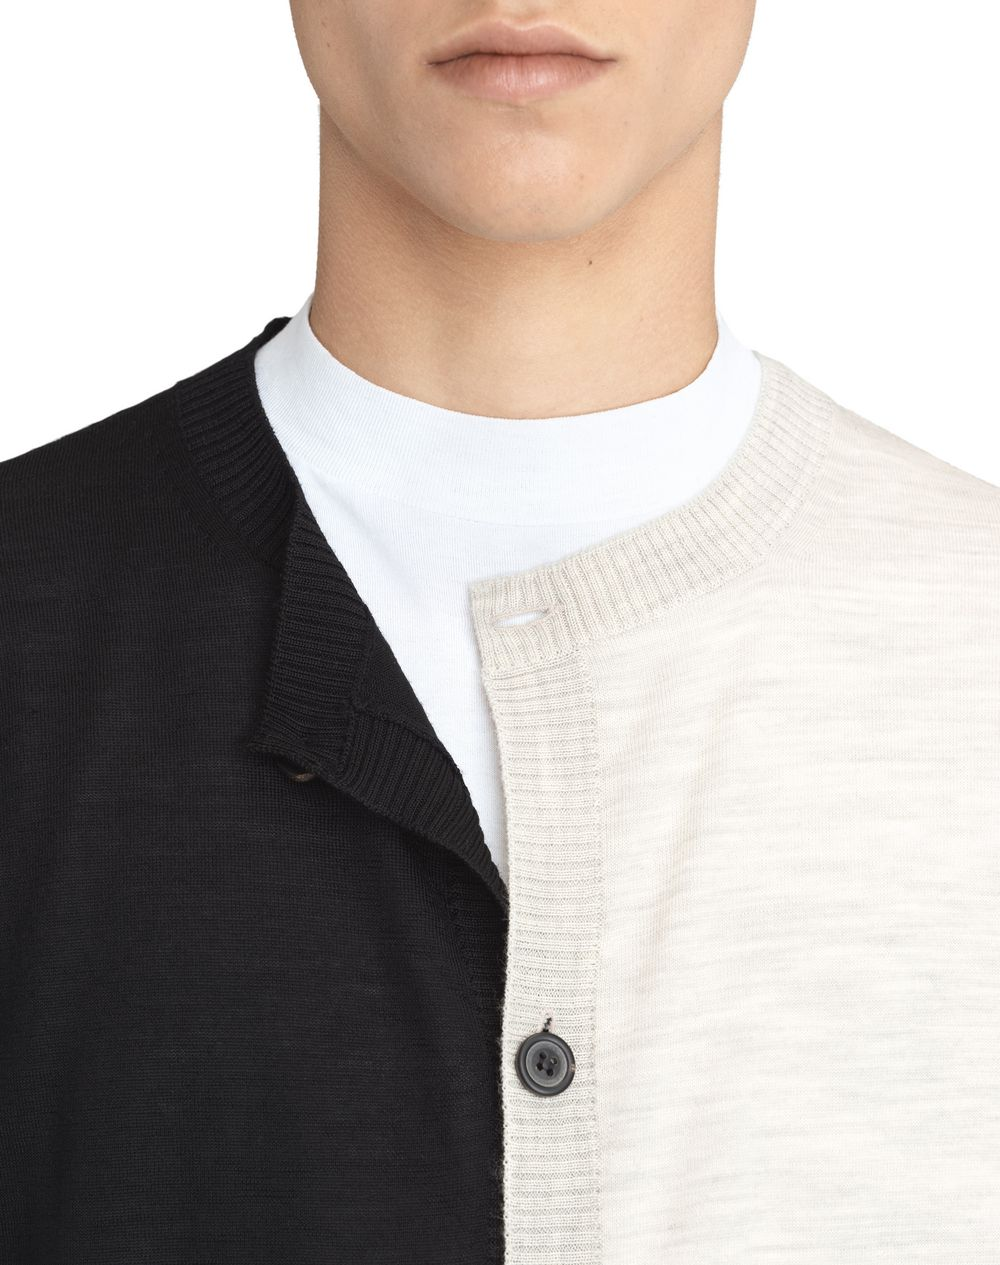 BLACK AND WHITE DOUBLE-BUTTONED CARDIGAN - Lanvin